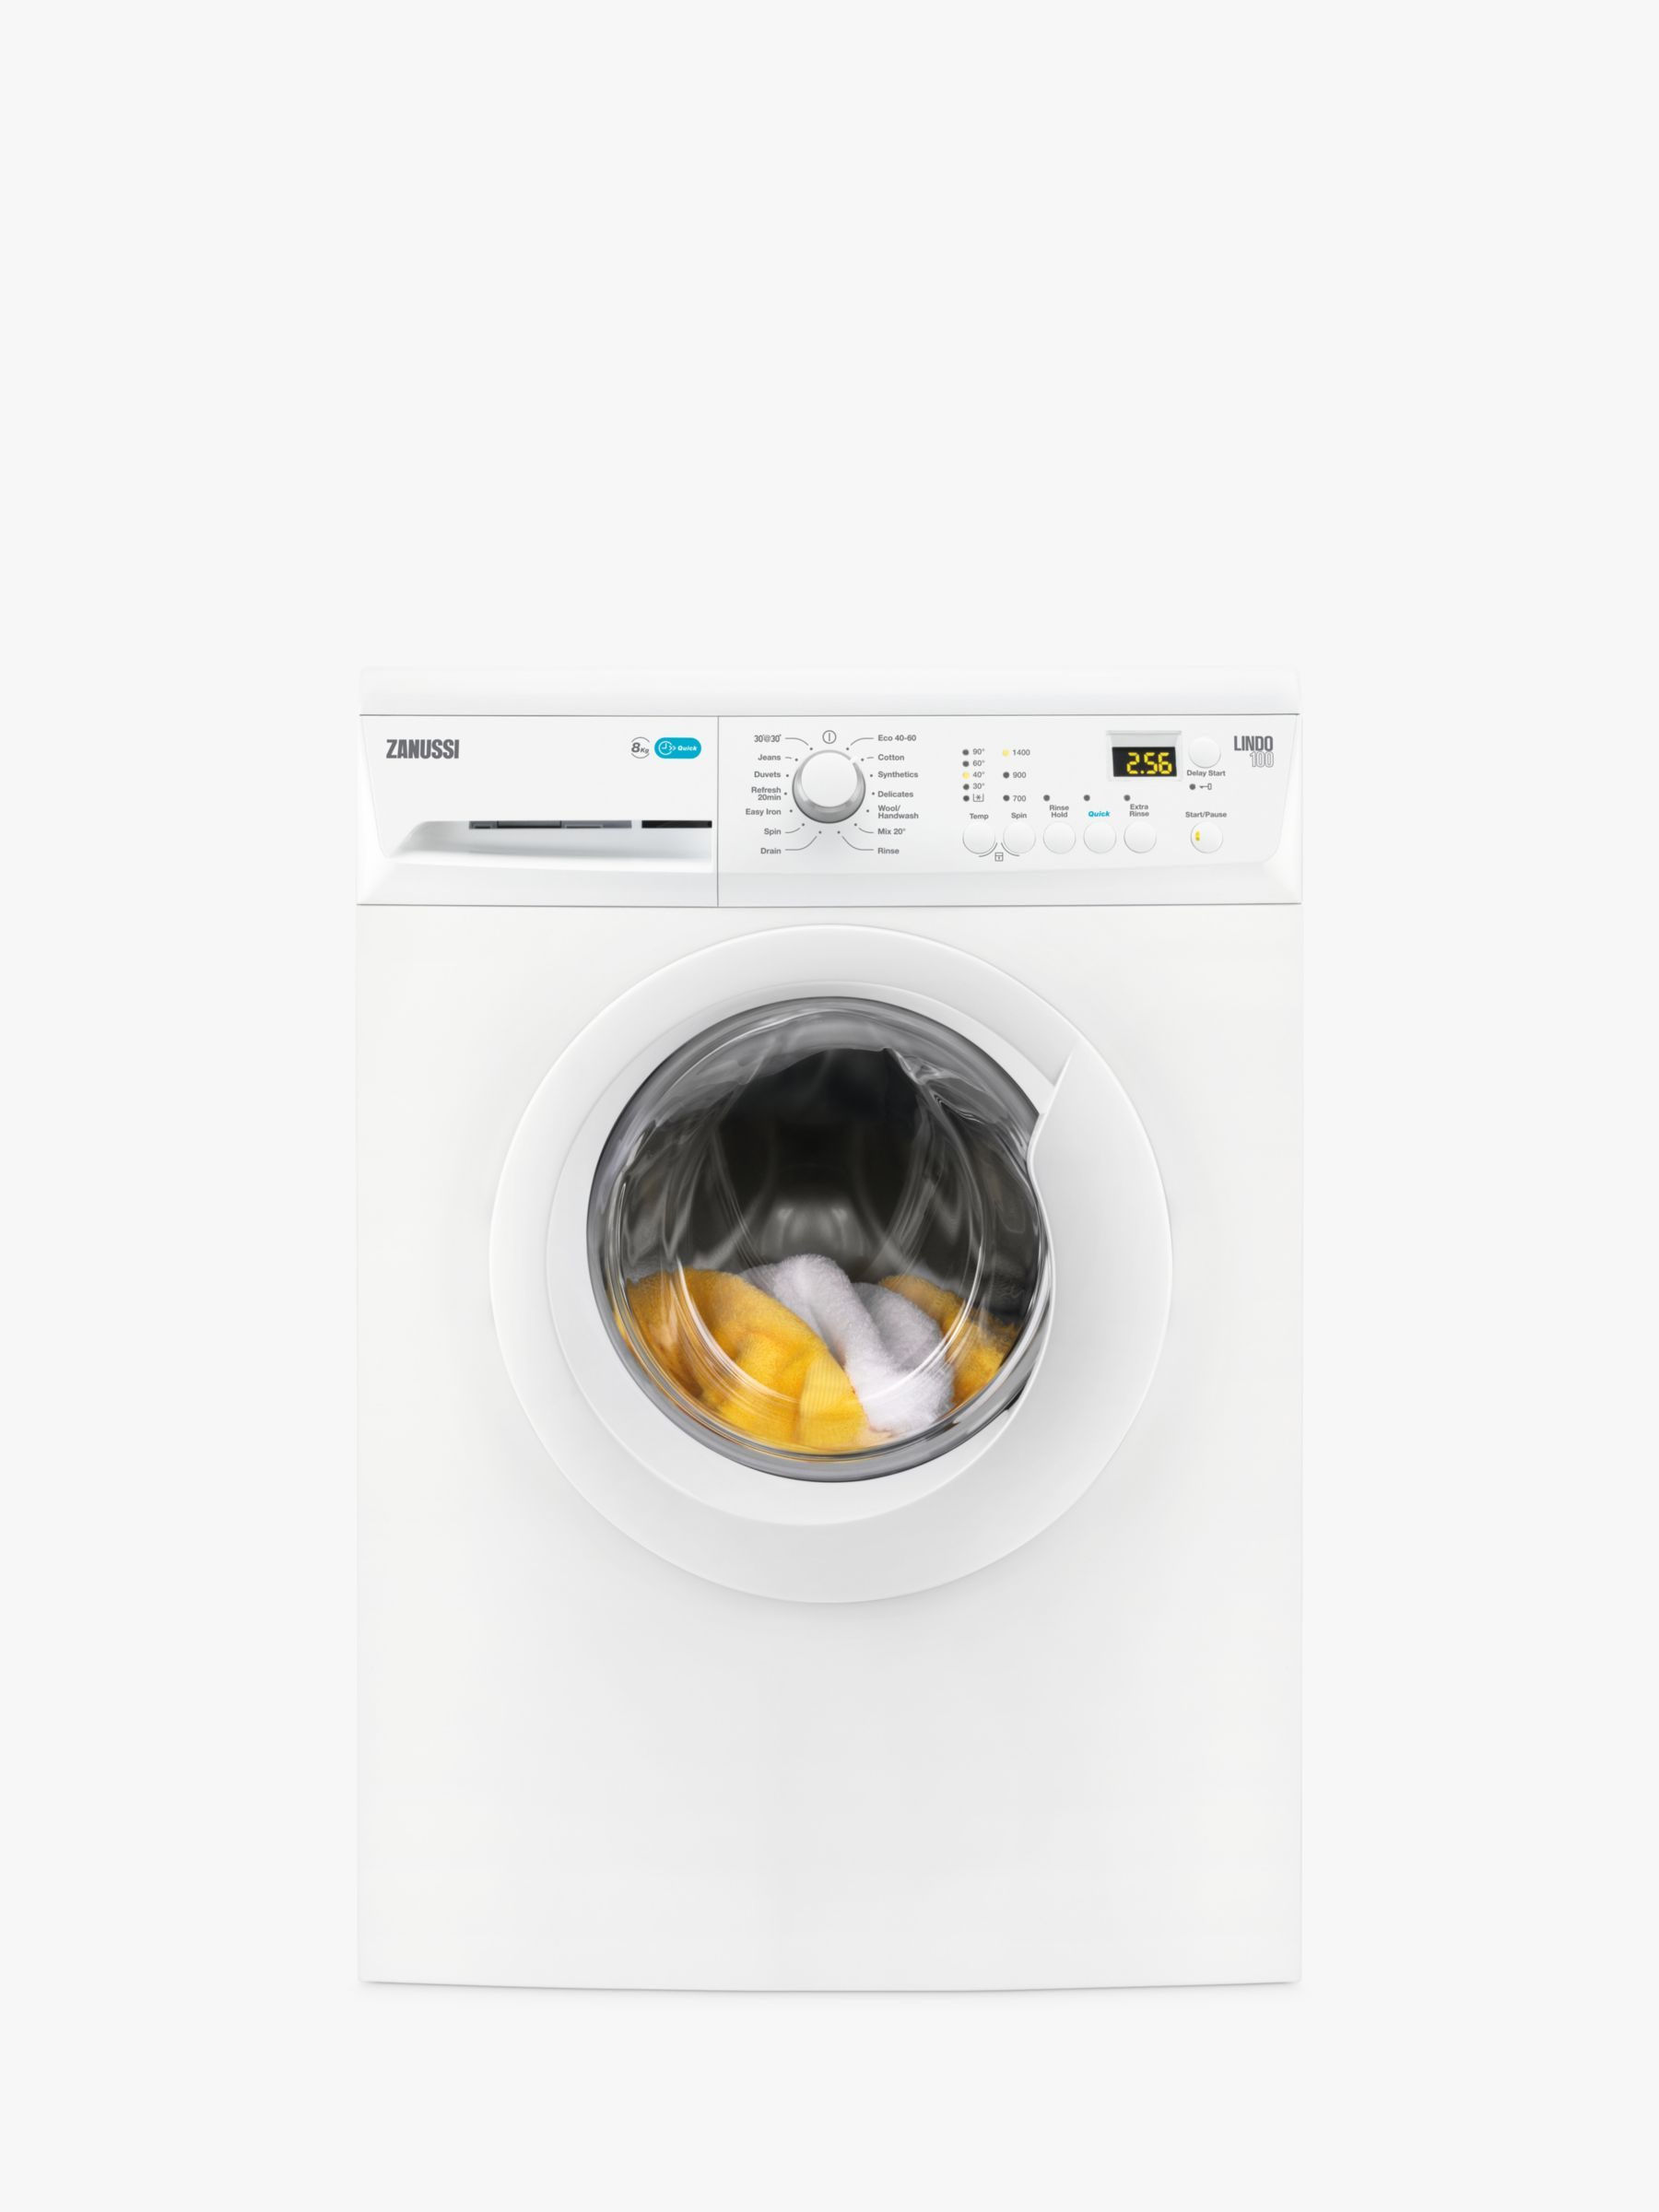 Zanussi Zanussi ZWF81441W Freestanding Washing Machine, 8kg Load, A+++ Energy Rating, 1400rpm Spin, White